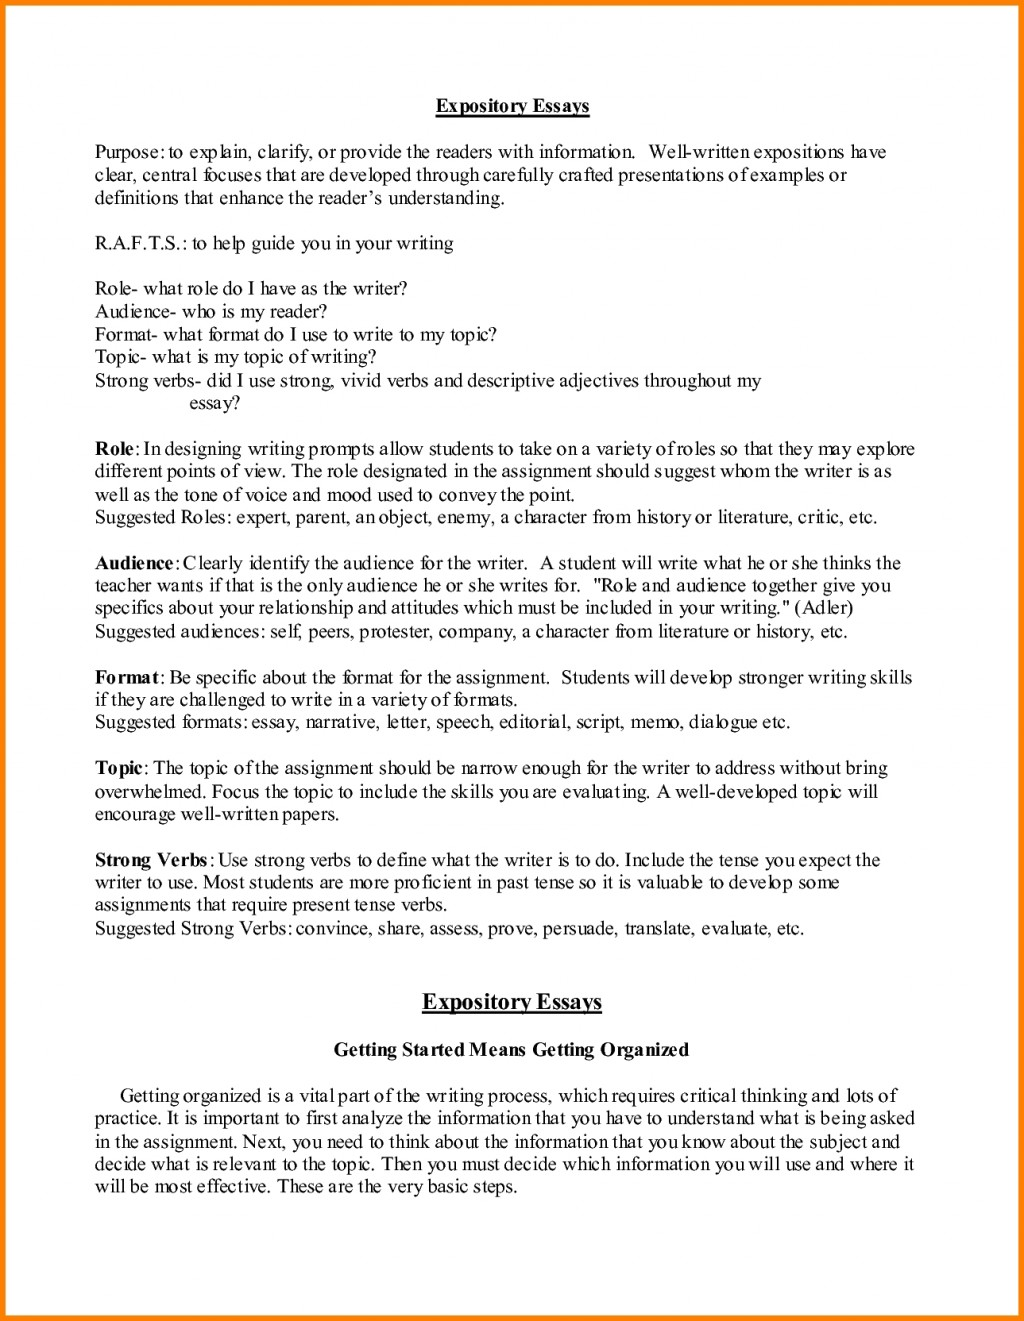 021 Describe Critical Thinking Theory Thesis For An Essay Should The Persuasive Brainly Good Fearsome With Business Letters Use Wr Companies That Write Papers Students Essays Is Type Unbelievable A Of Large